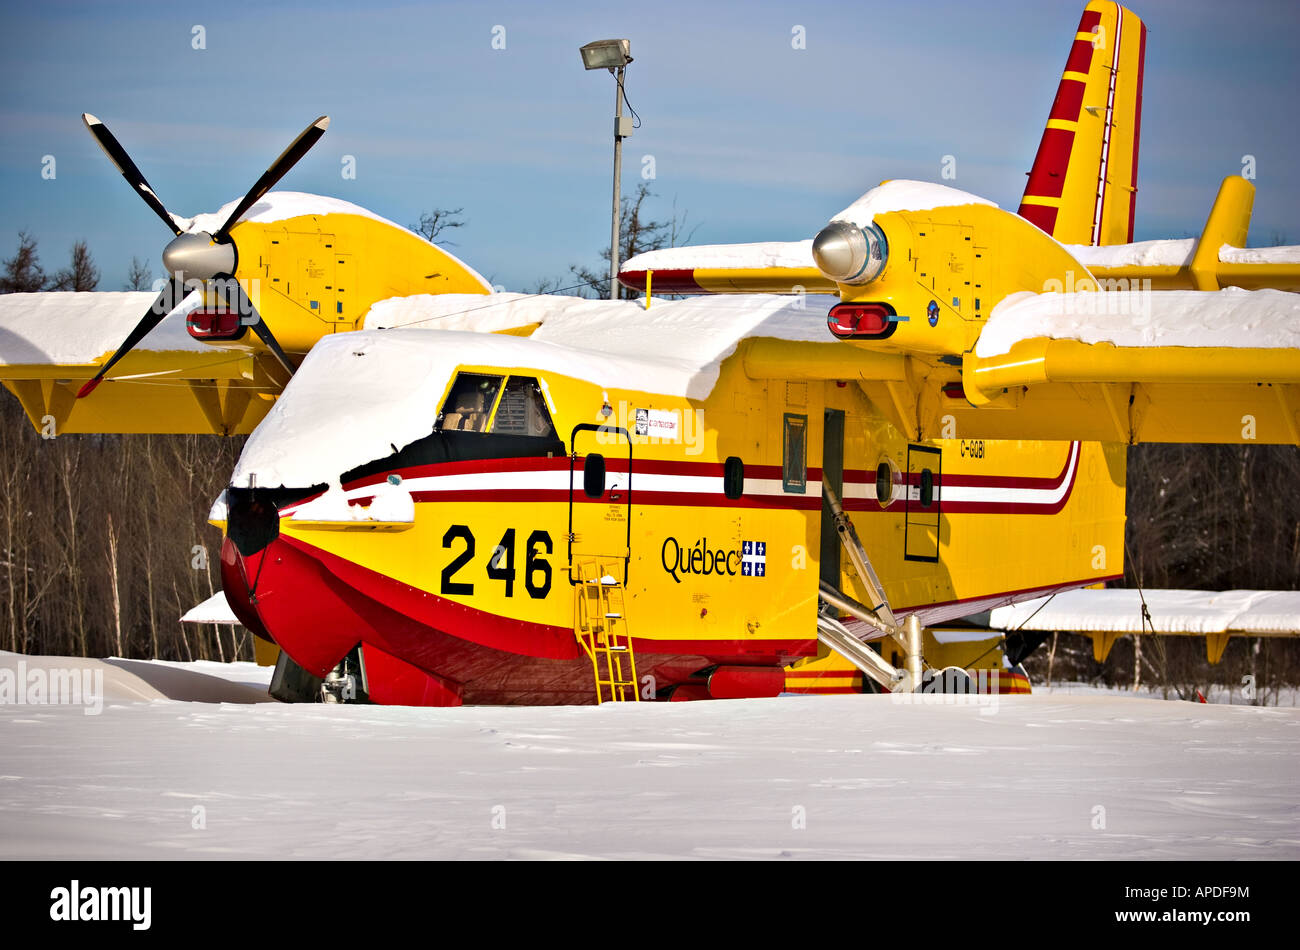 A Bombardier 415 lies in the snow at the Quebec City airport - Stock Image